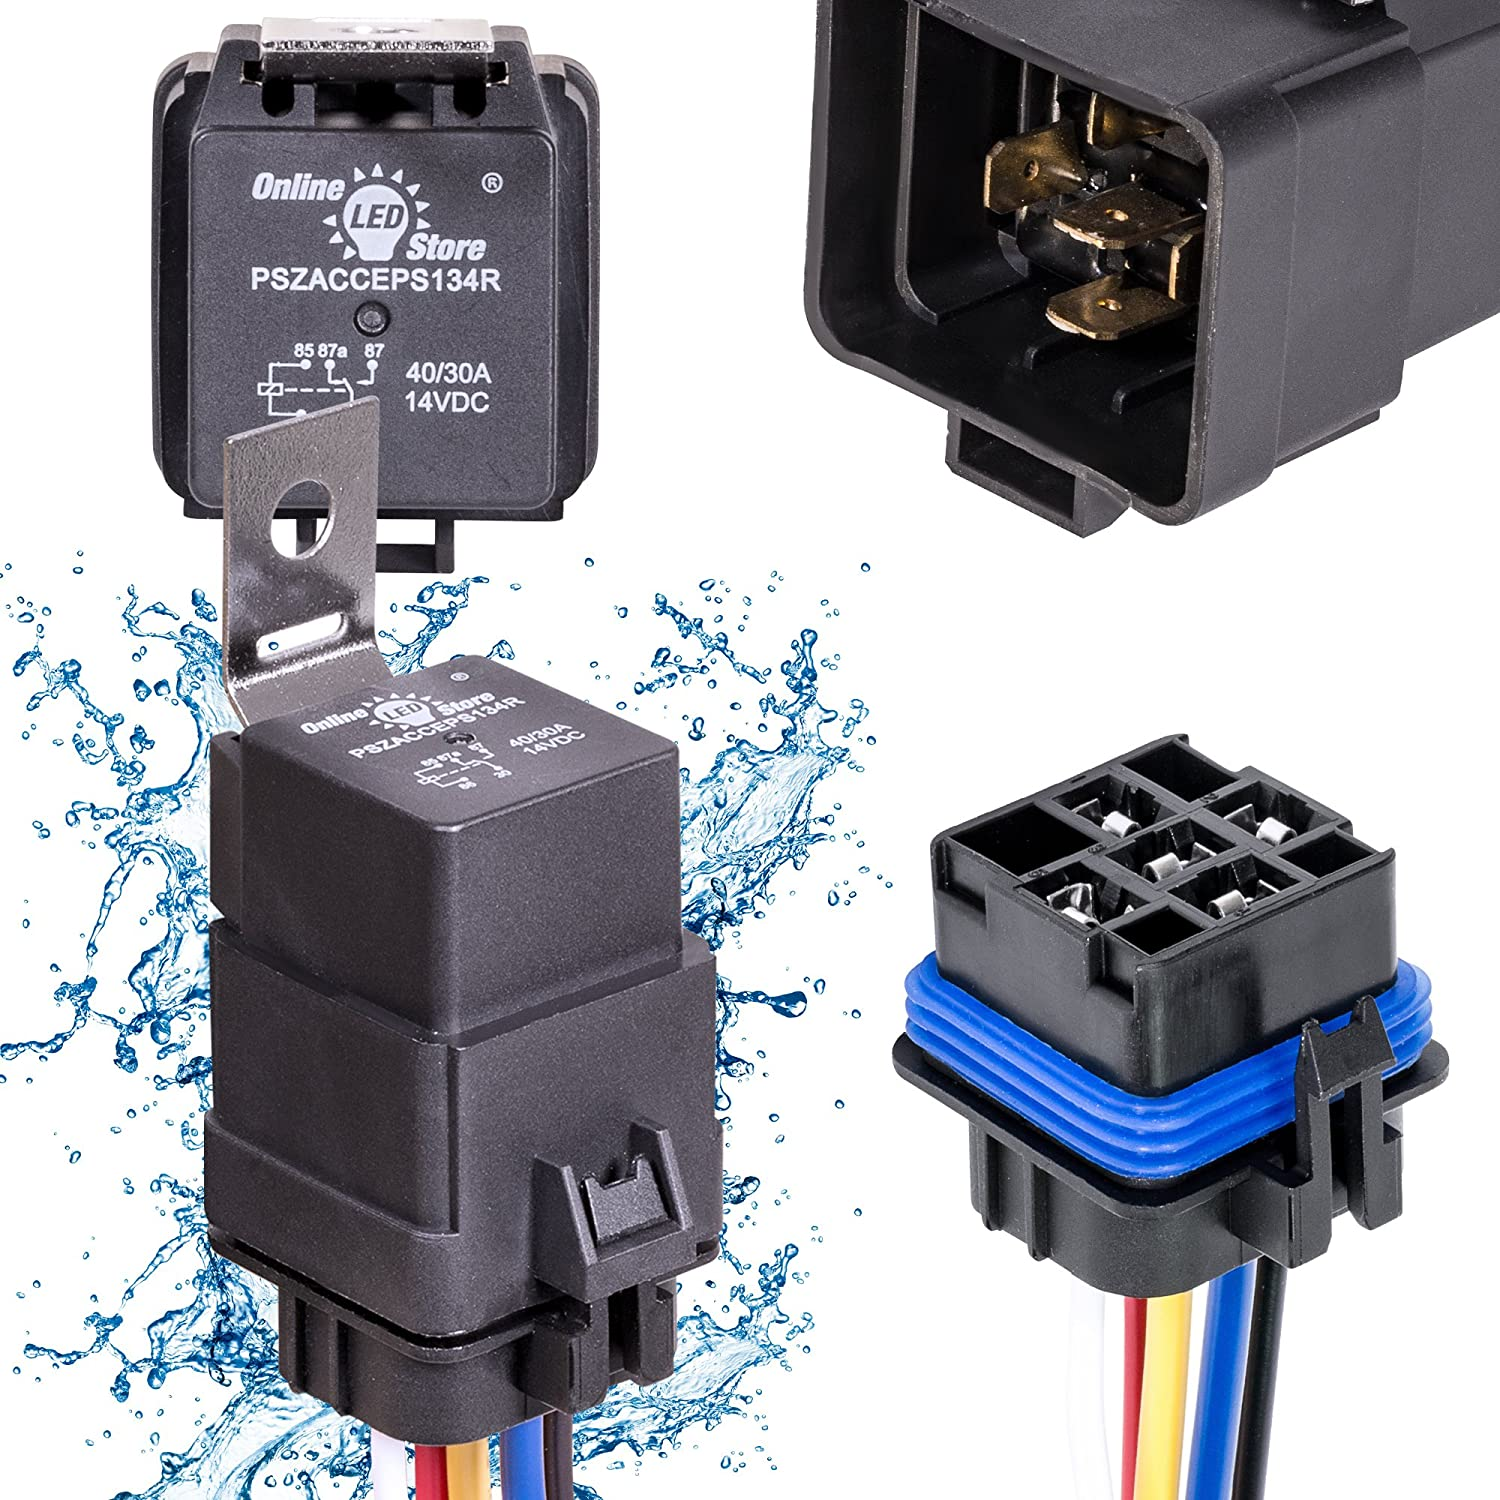 Online Led Store 40 30 Amp Waterproof Relay Switch 4 Prong 12 Volt Harness Set 12v Dc 5 Pin Spdt Automotive Relays Awg Hot Wires